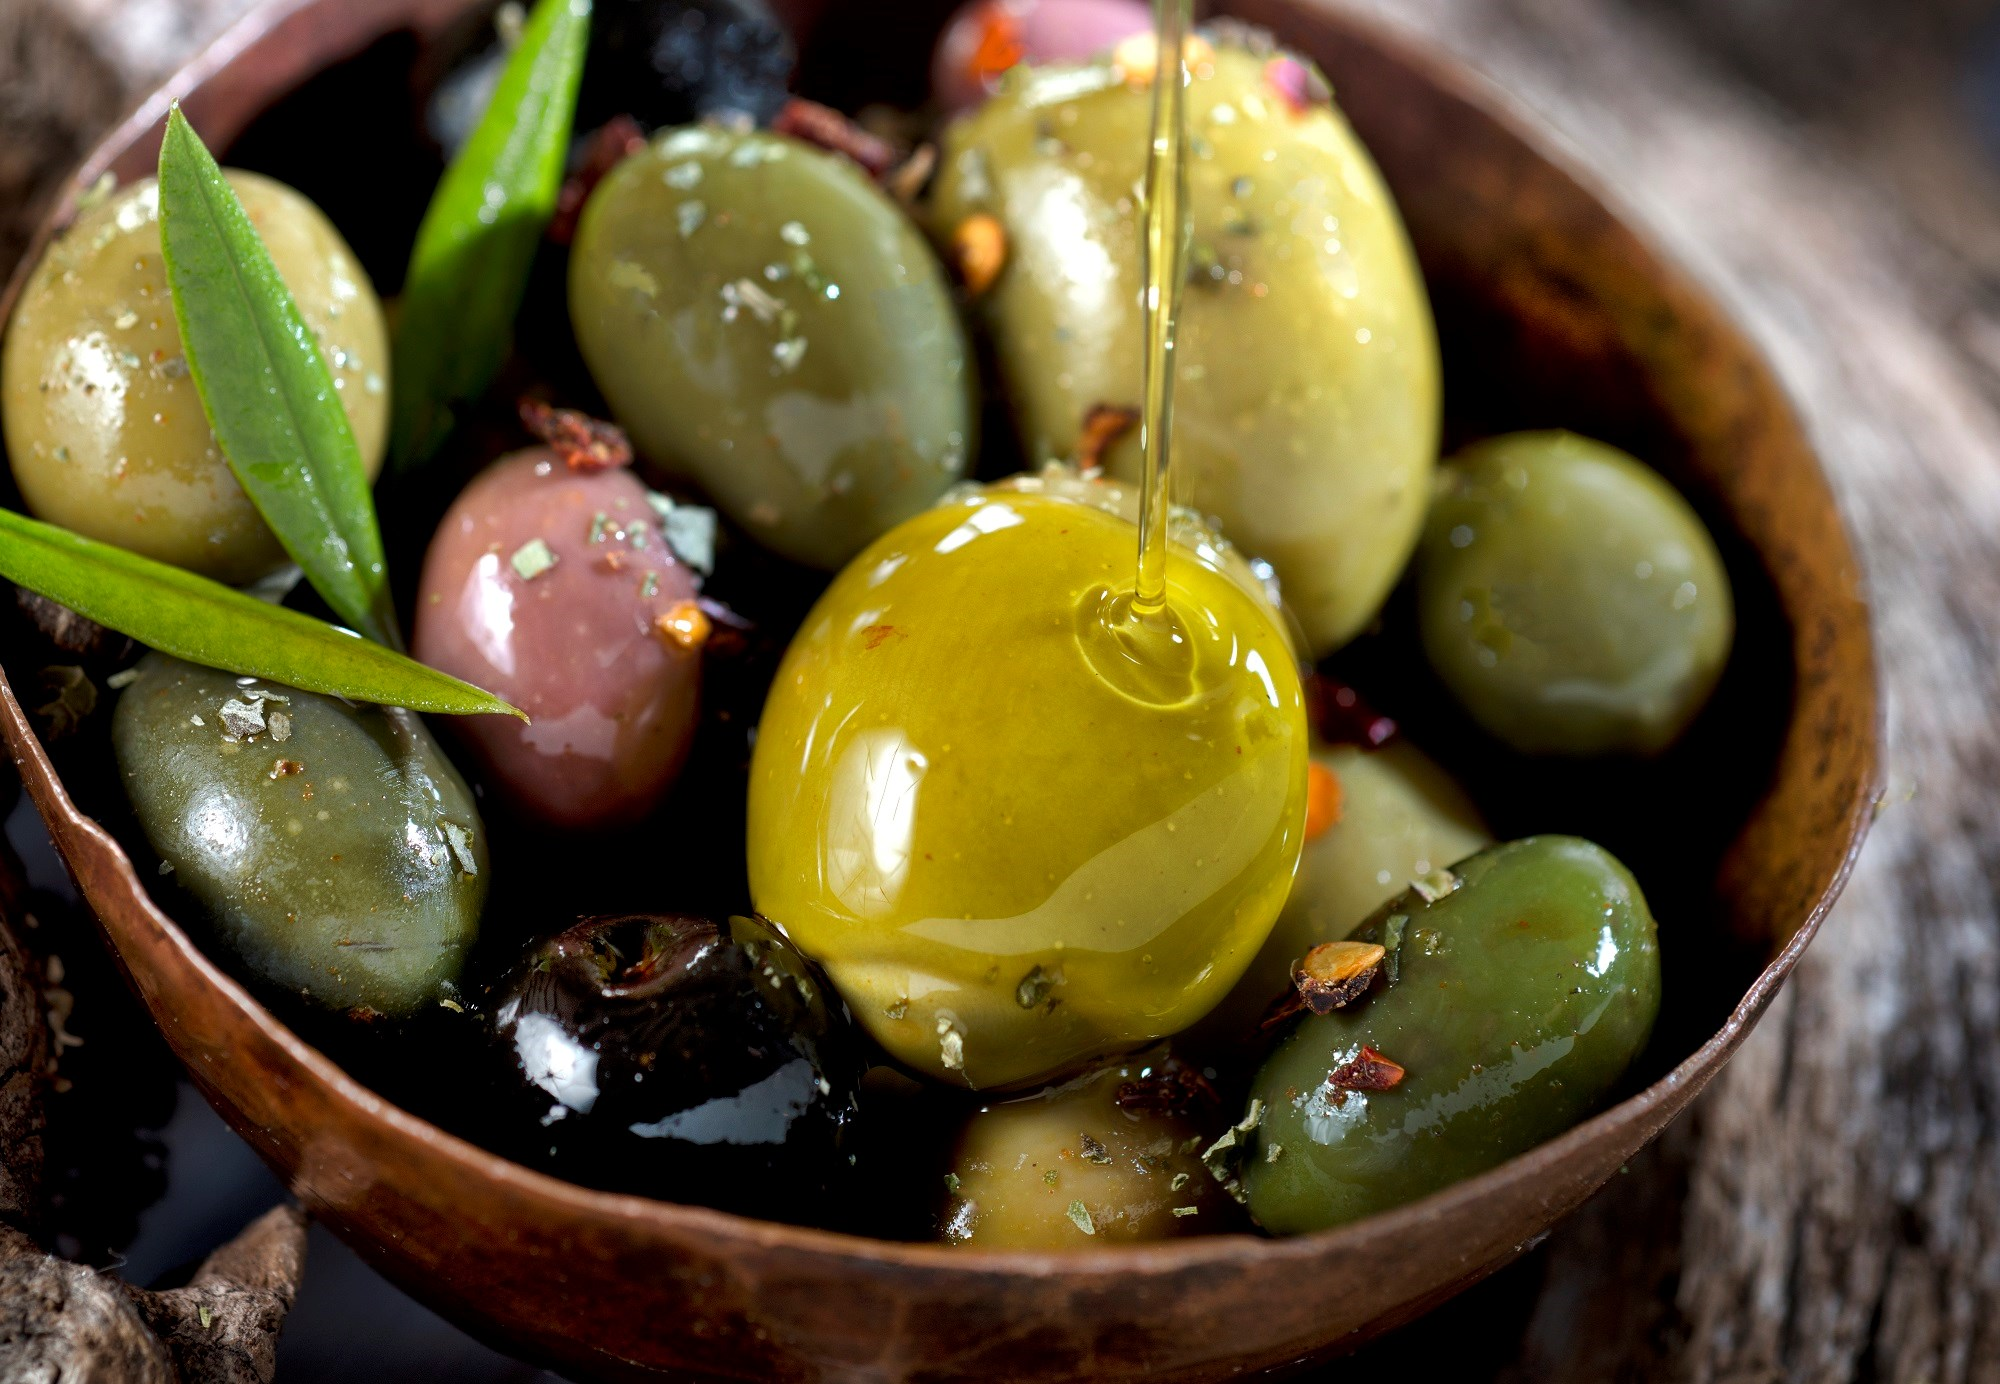 Risk of CV Events Down With Mediterranean Diet Plus Olive Oil, Nuts